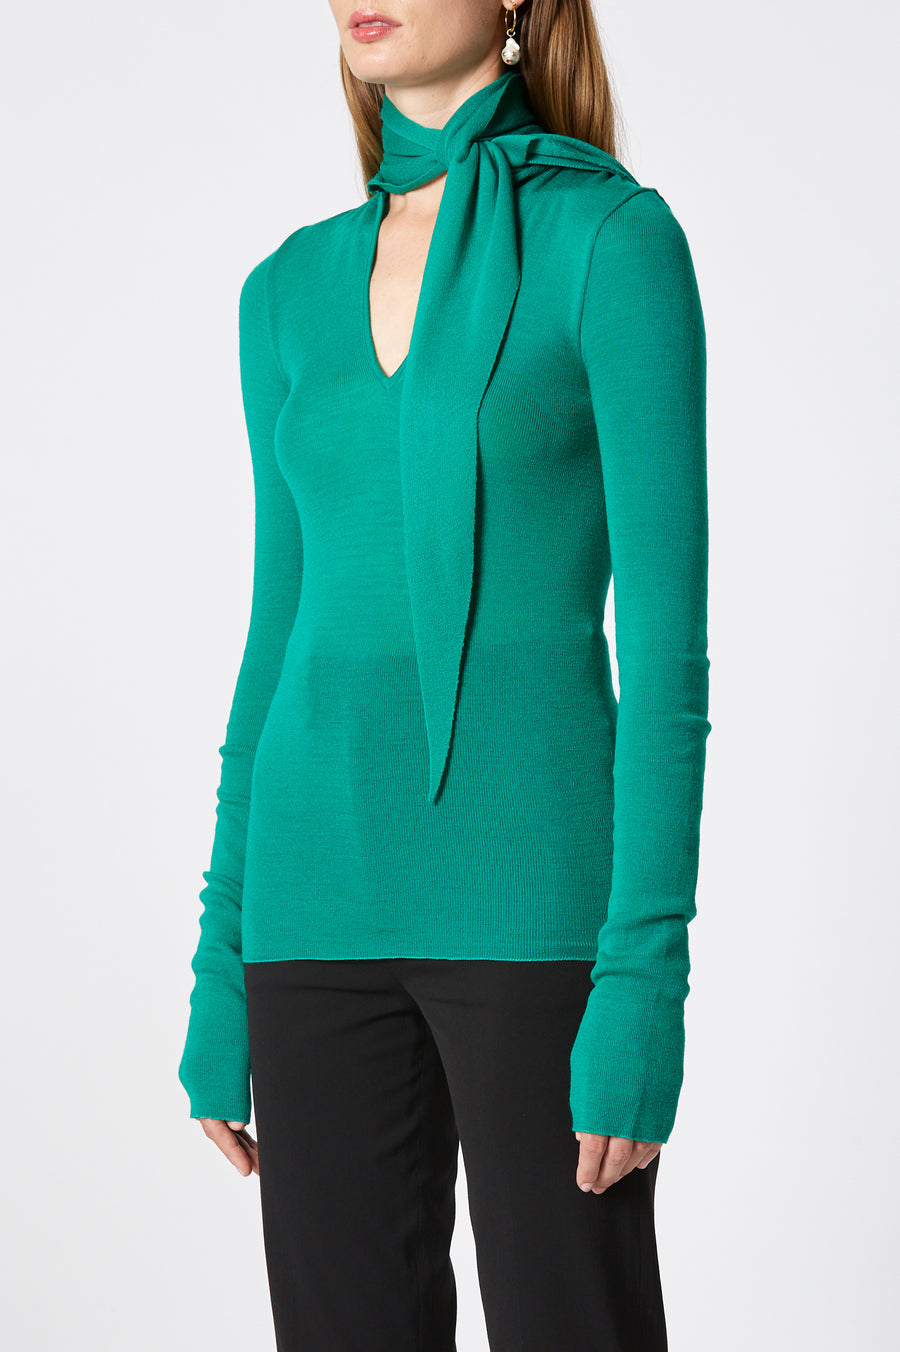 Babywool, 100% Australian Extrafine Merino, Long Sleeve, Tie Neck, color Emerald